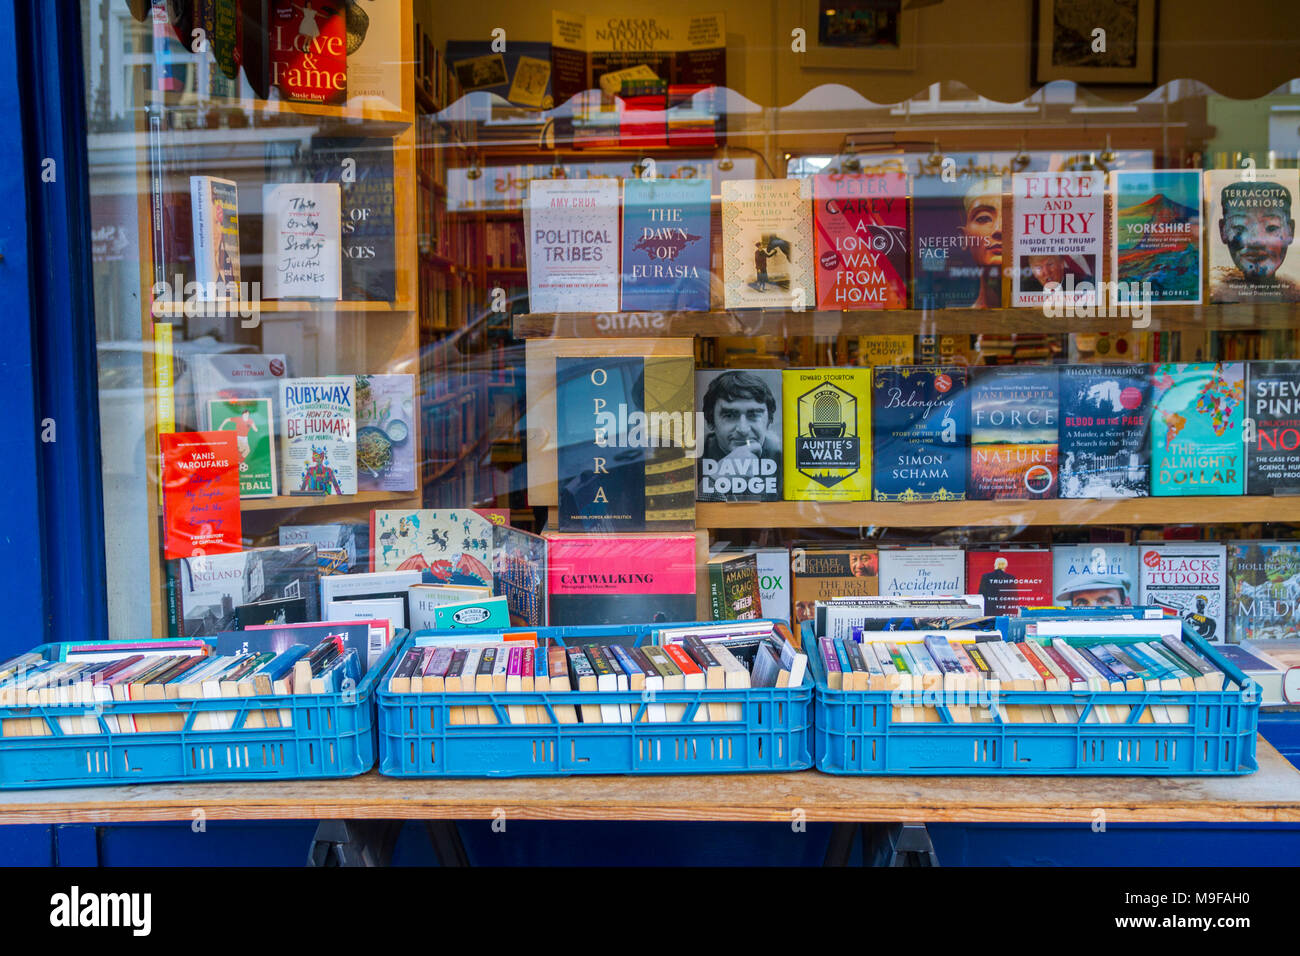 Primrose Hill Books, Old fashioned bookshop, bookstore with crates of secondhand books outside stacked, London UK window book display, window display, Stock Photo